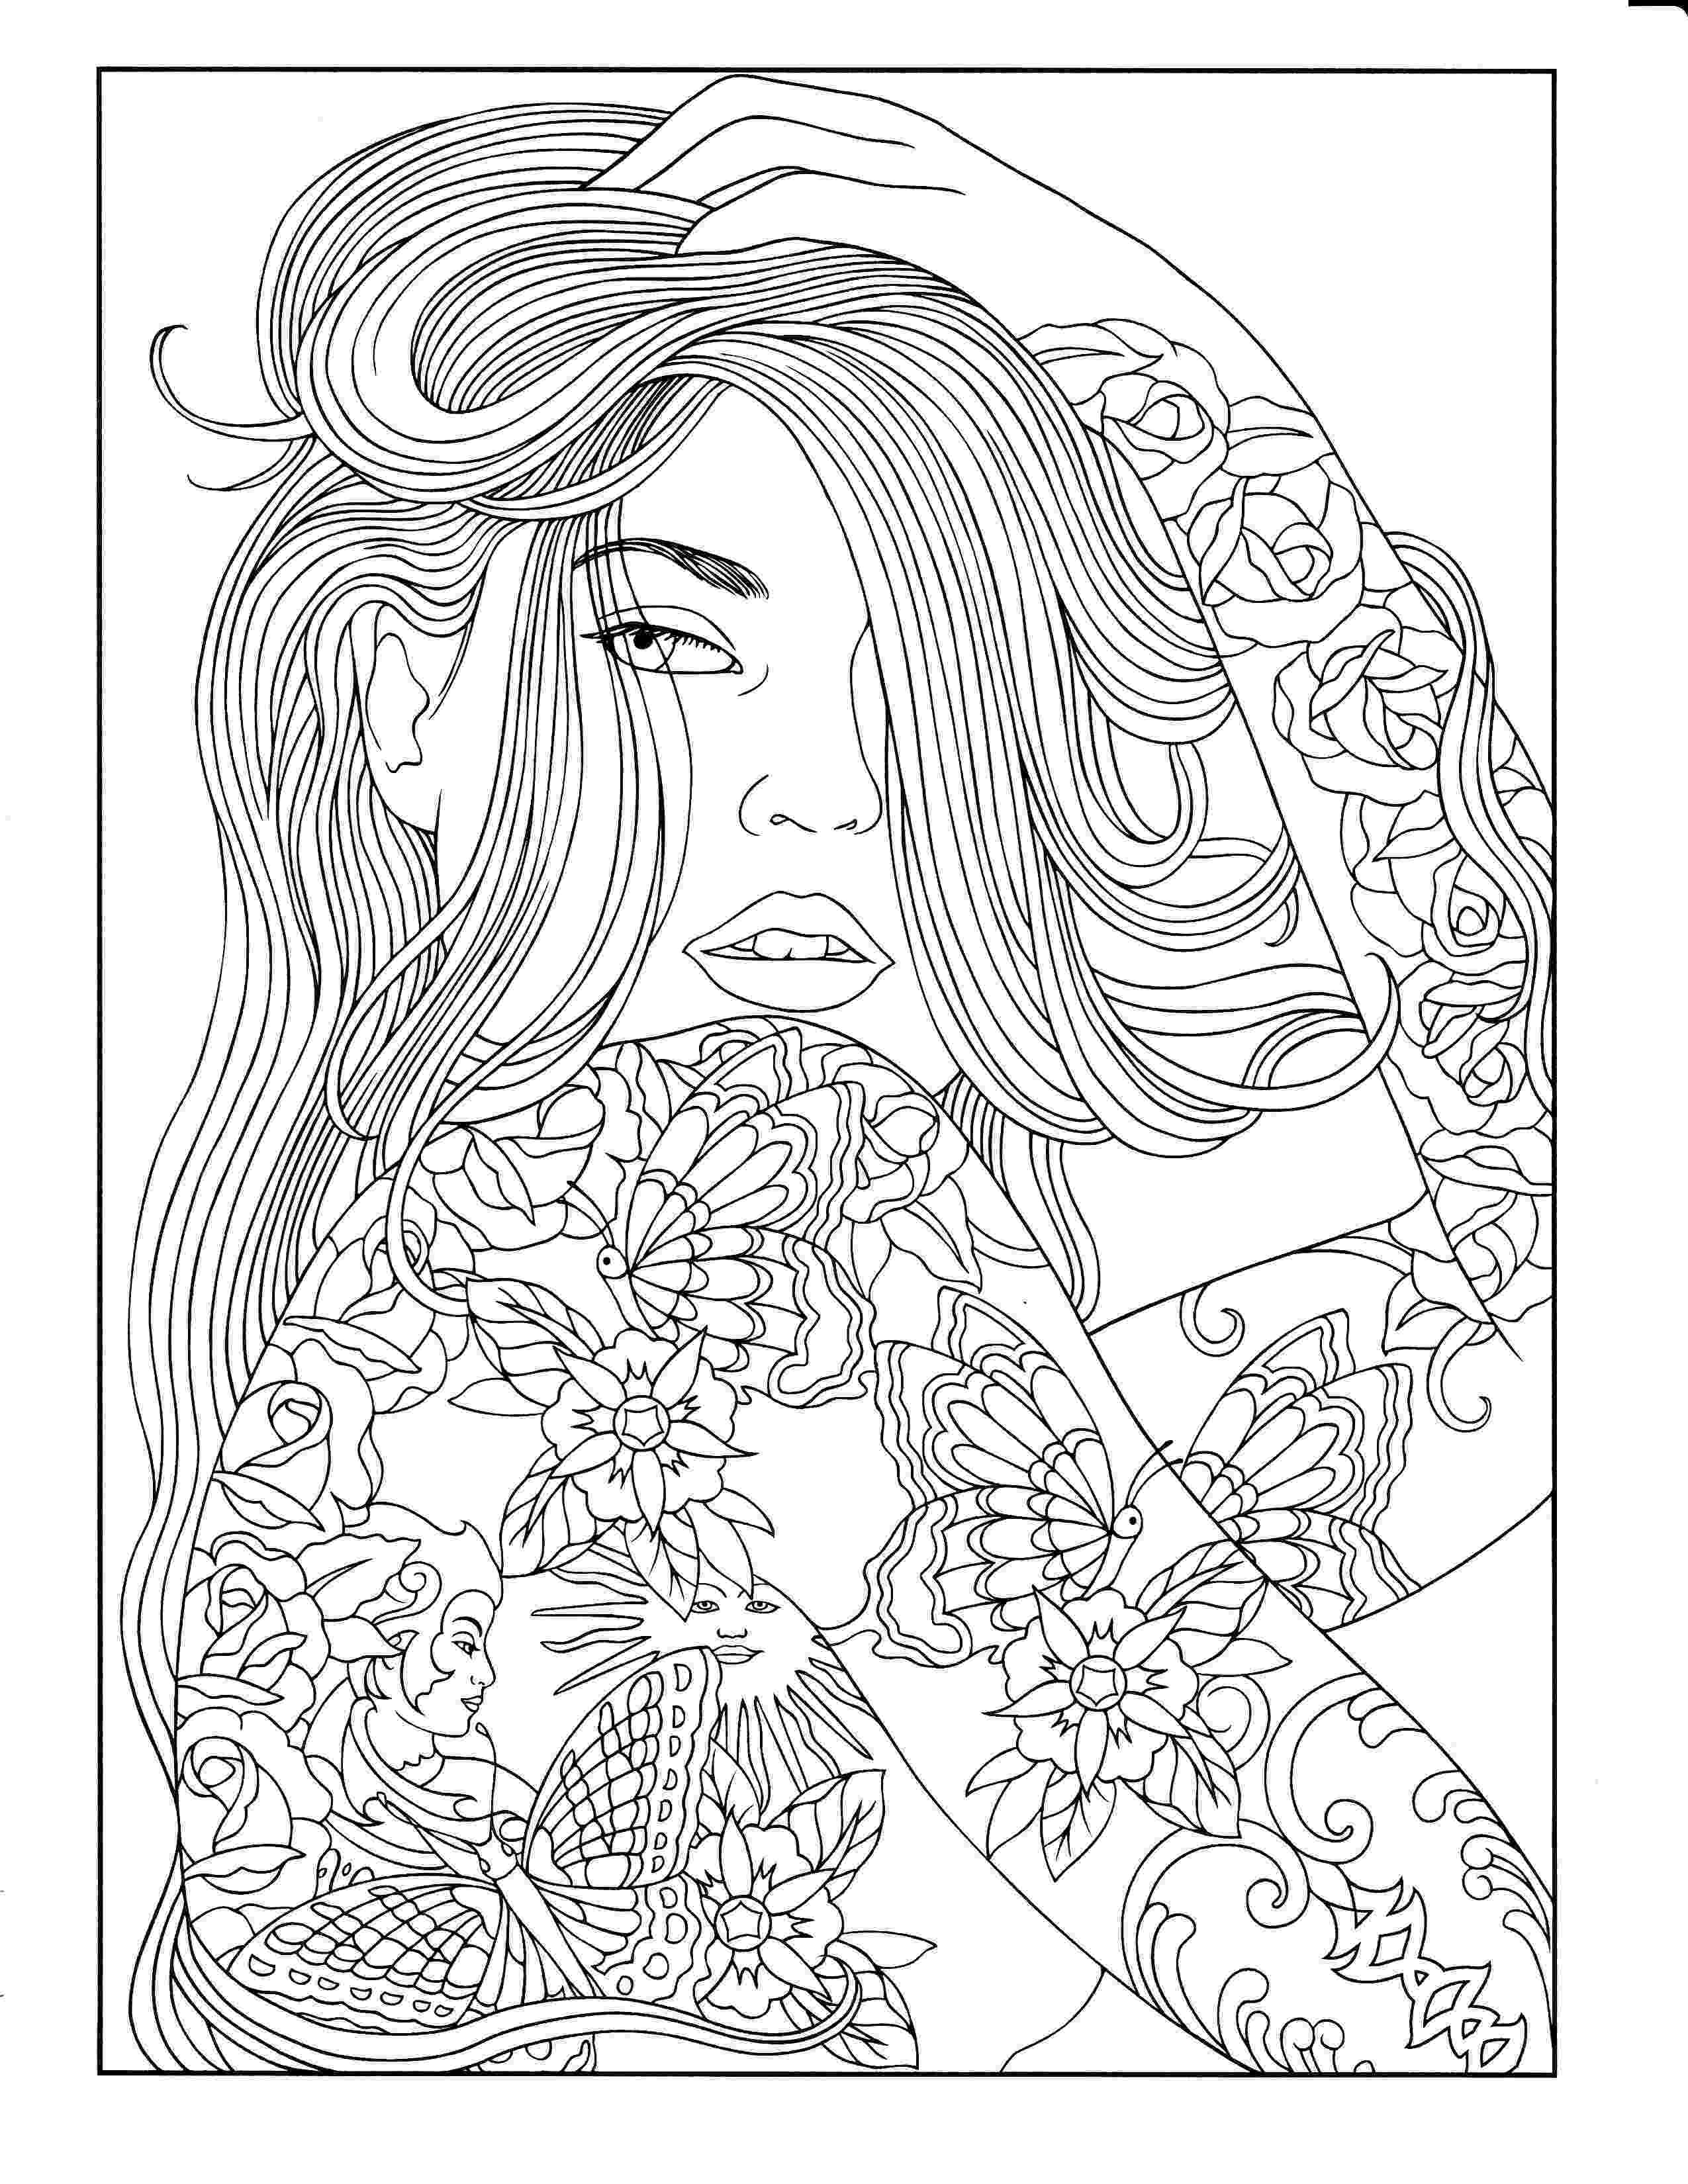 person coloring page beauty coloring page people coloring pages adult coloring page person